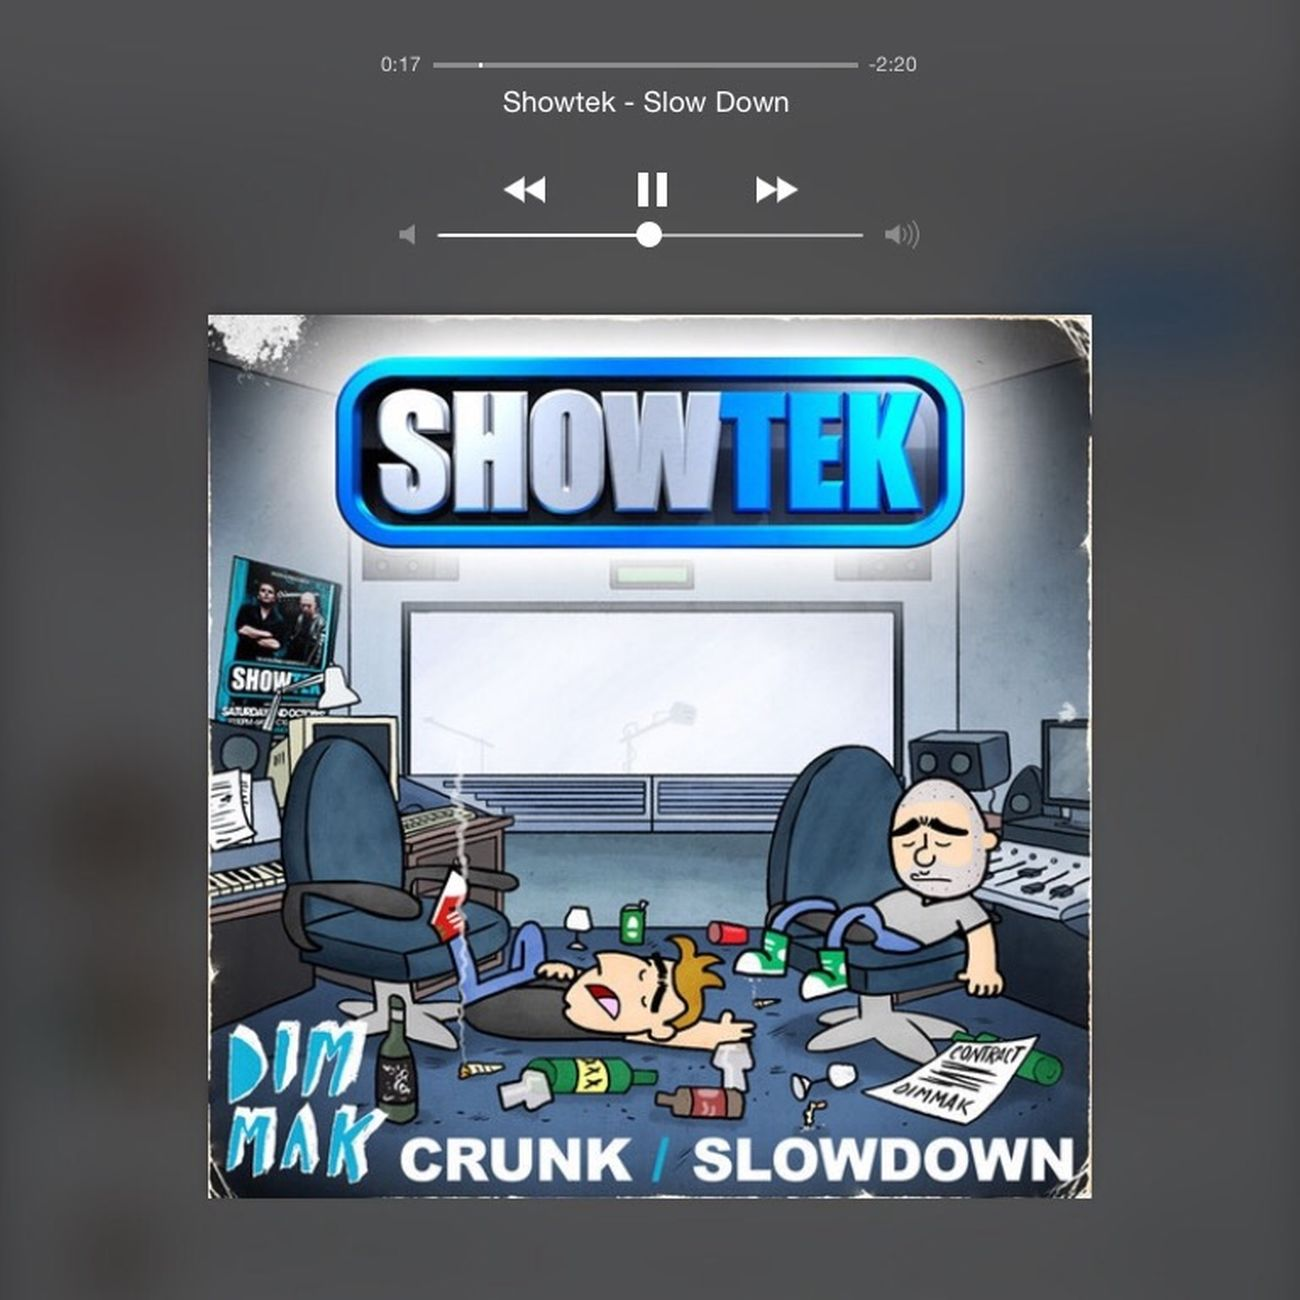 No mtter how old this get will always be a tune and a hlf brings bck so many memories☺️☺️ Edm Music Showtek Memories